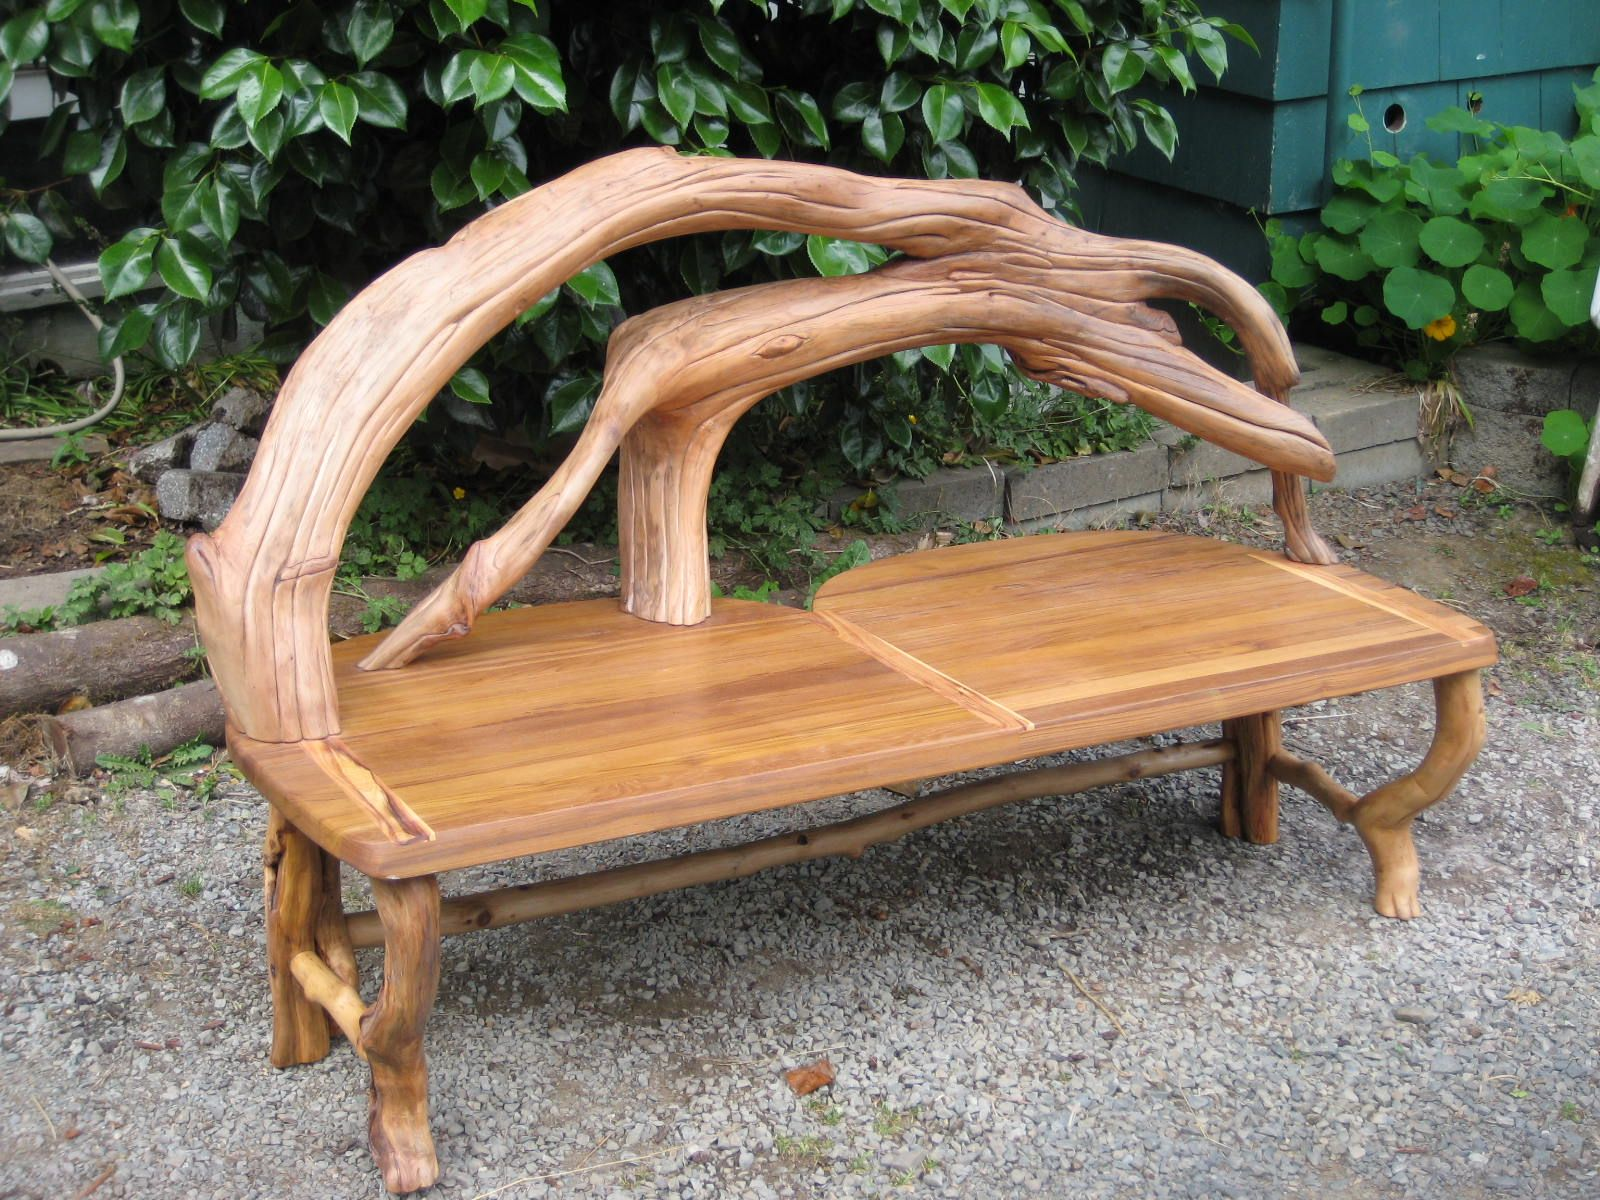 images about wood art on Pinterest Wooden chairs